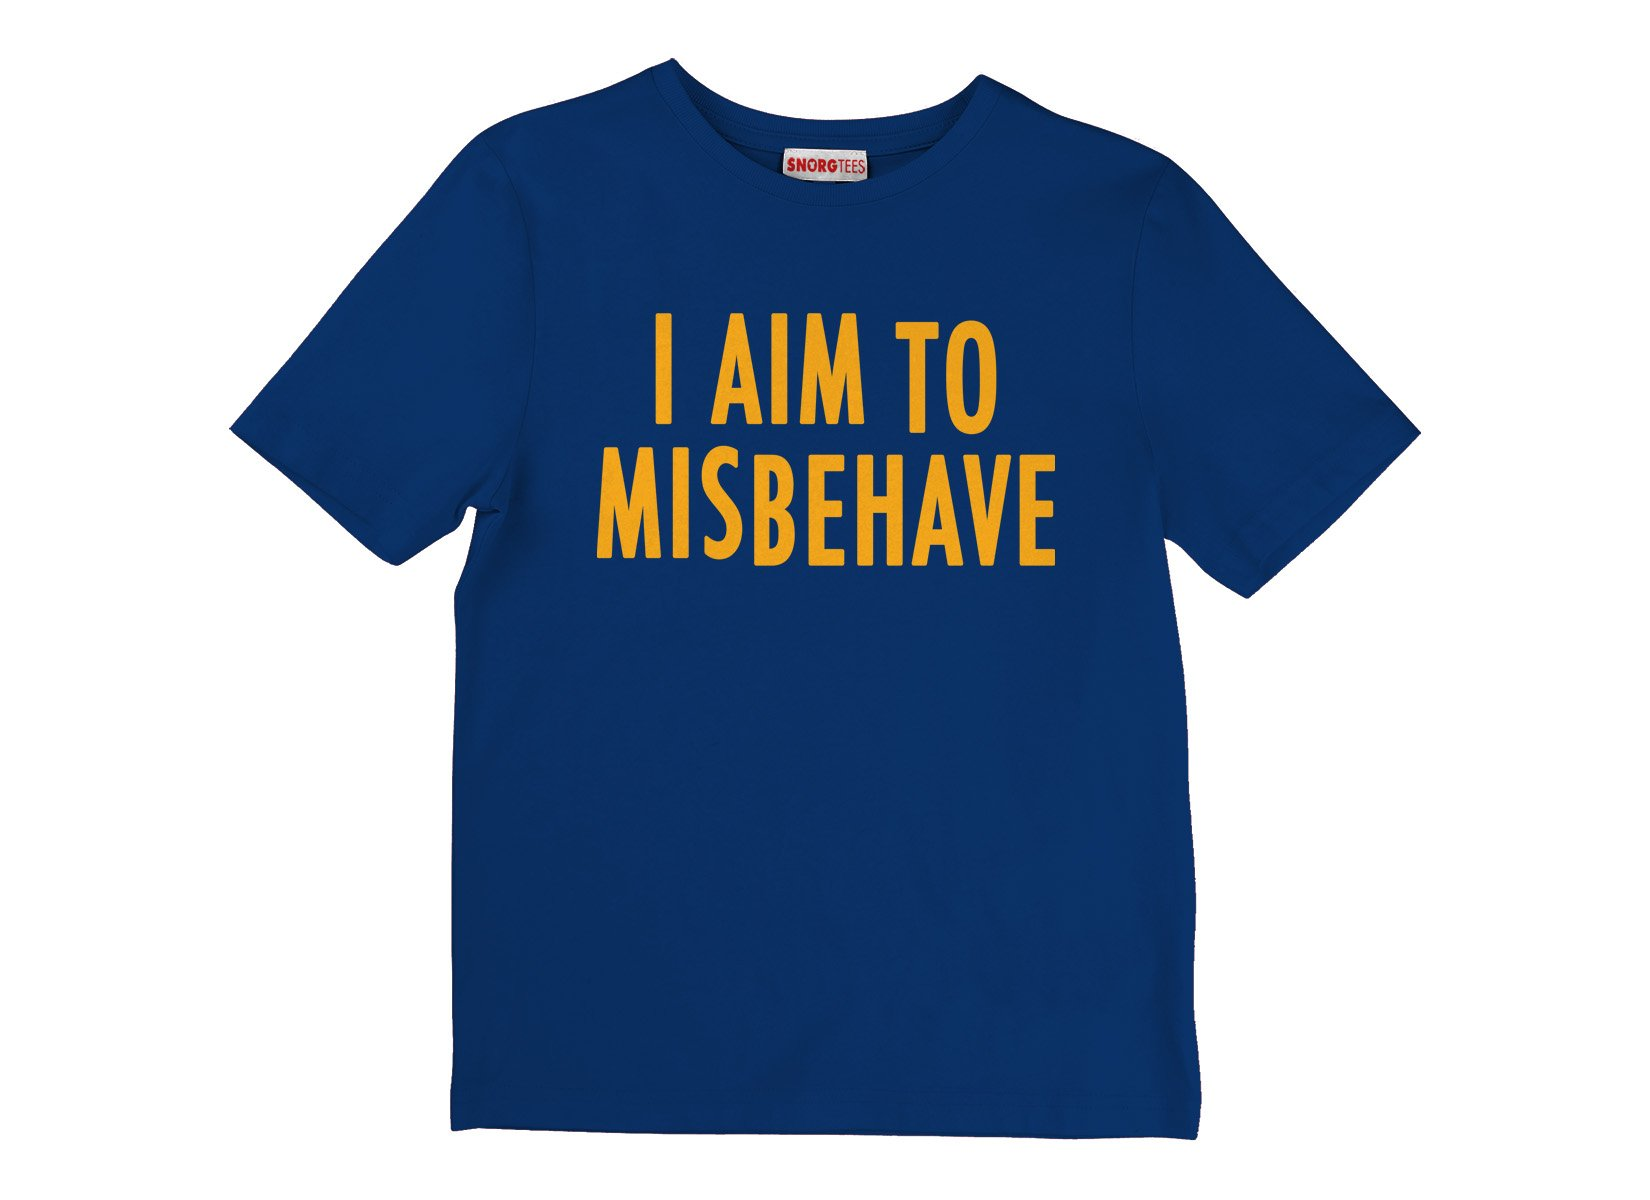 I Aim To Misbehave on Kids T-Shirt